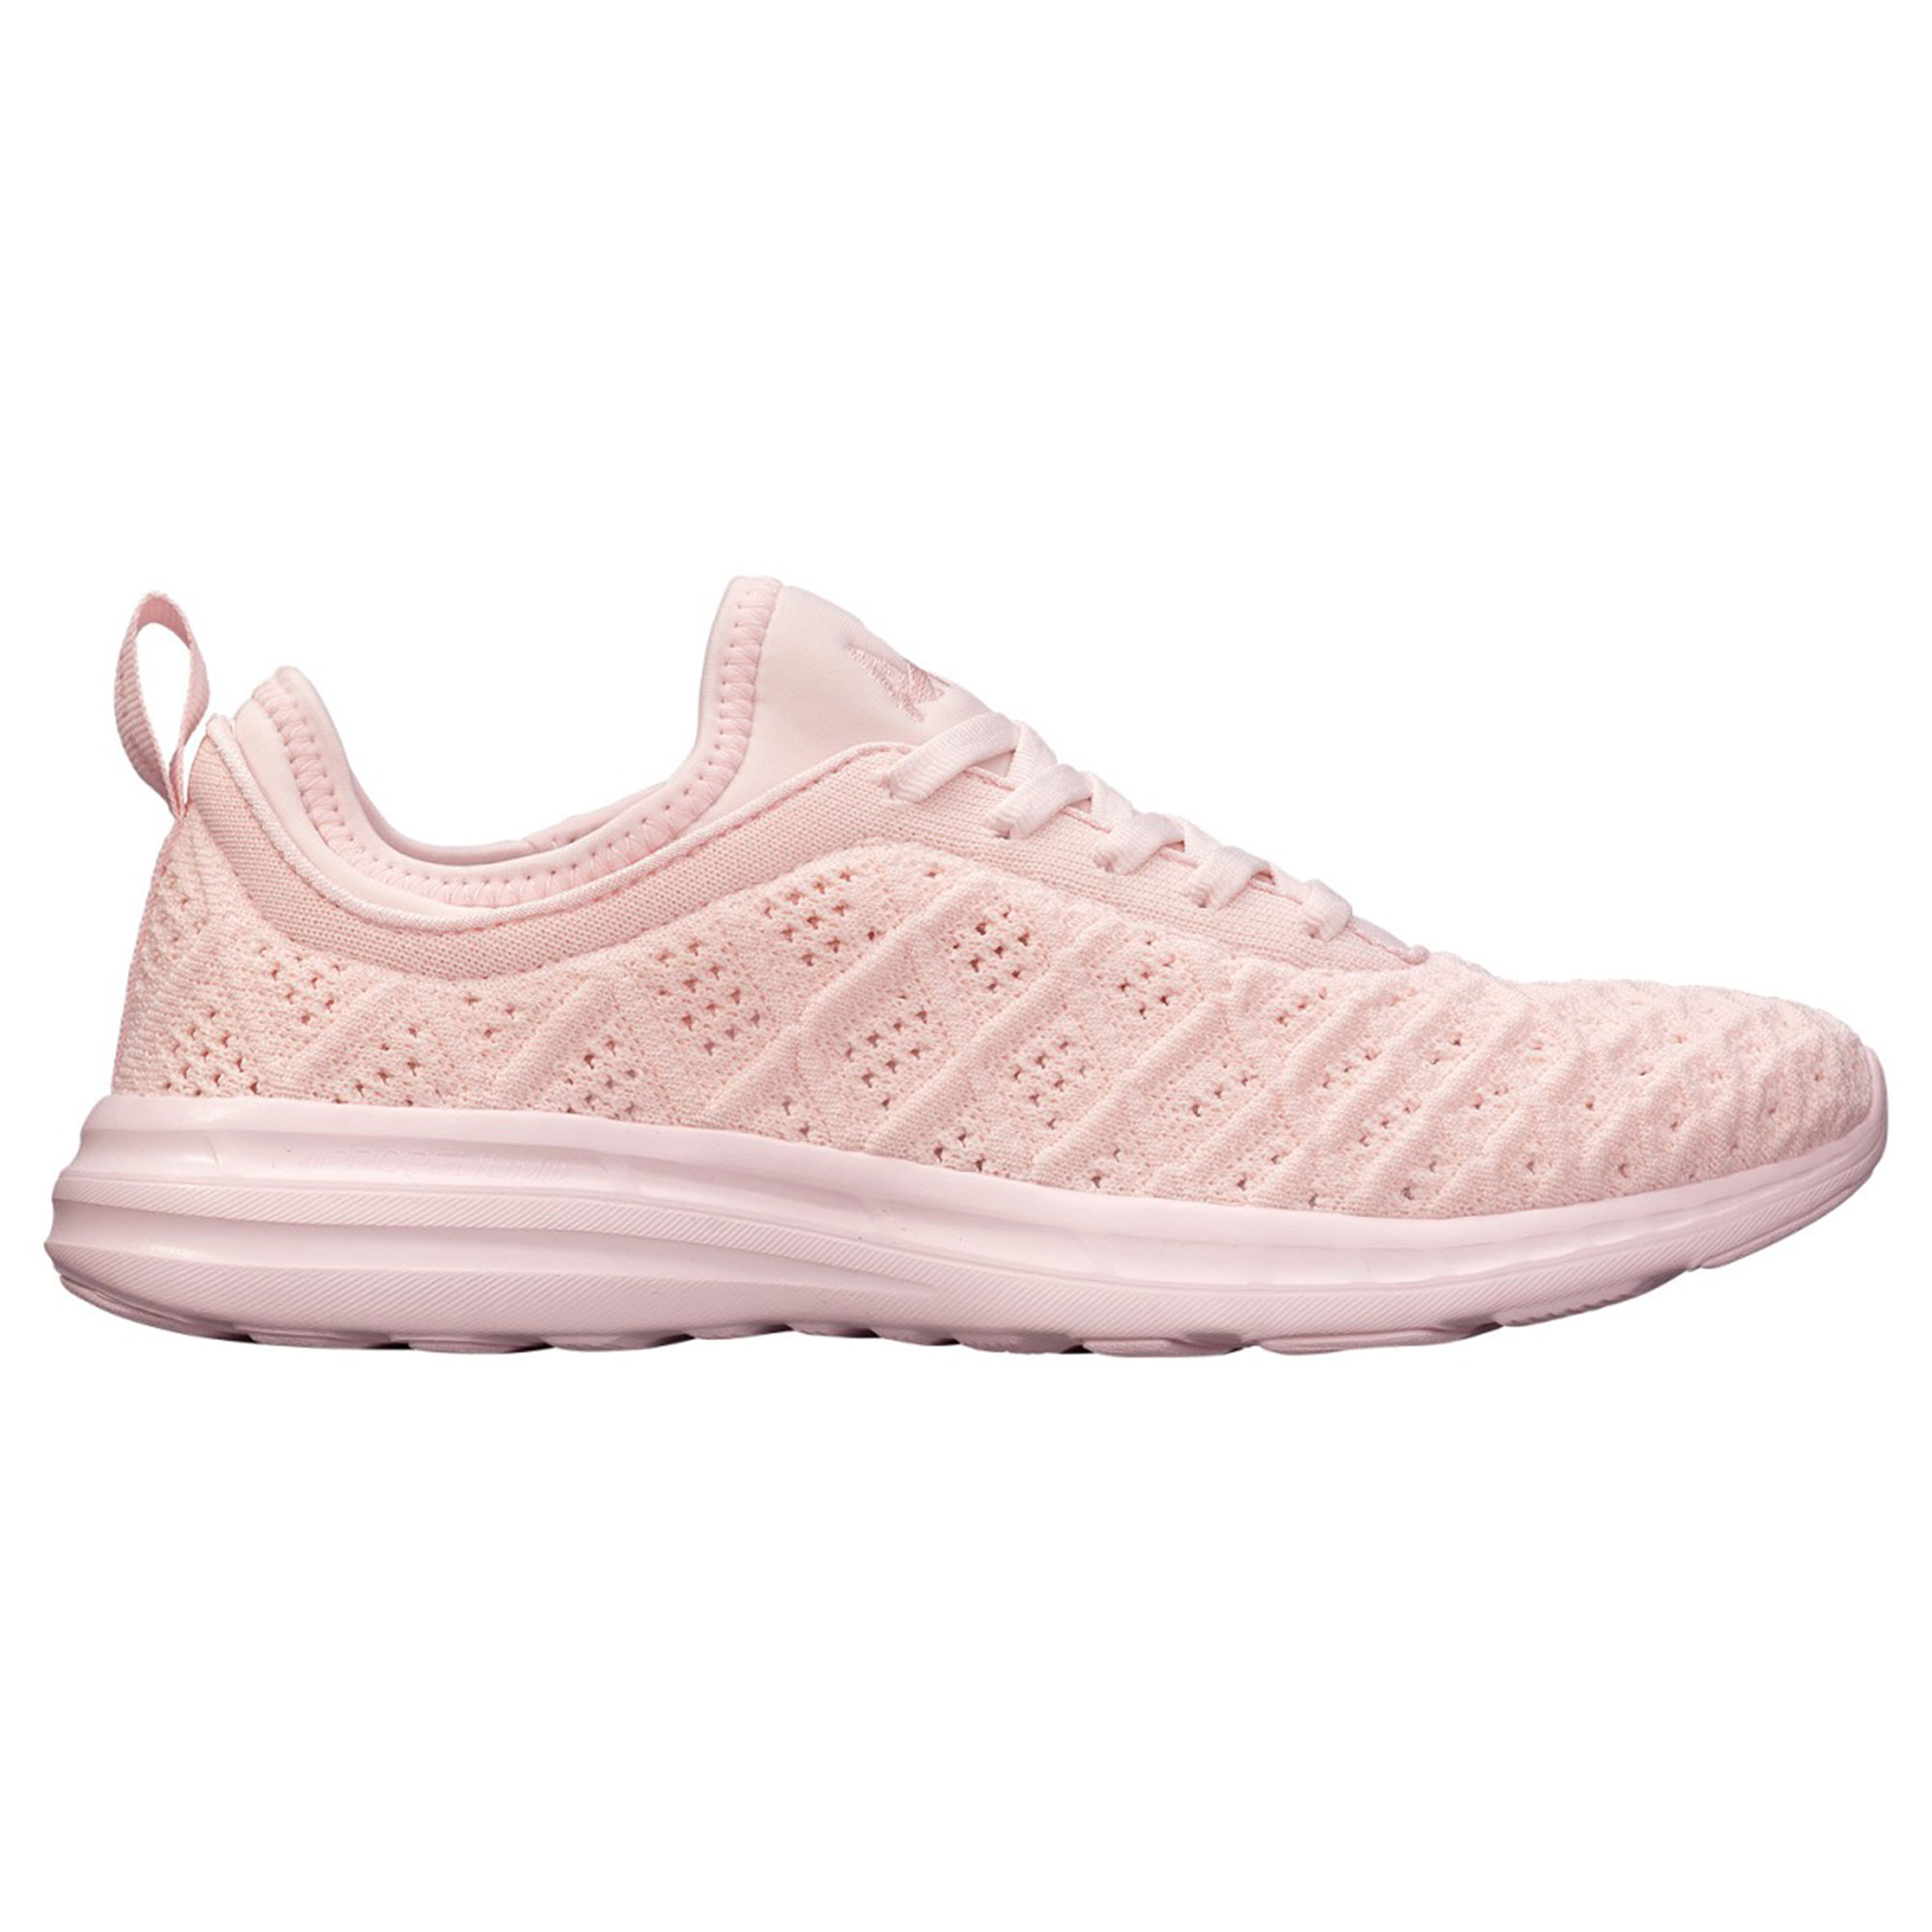 Valentine's Day Gift Guide 2019: Beauty and Fashion Ideas for the Lady in Your Life - Whether she's training for a marathon or looking for a pair of kicks to rock with her athleisure, these pretty-in-pink kicks are sure to be a hit. $165, athleticpropulsionlabs.com